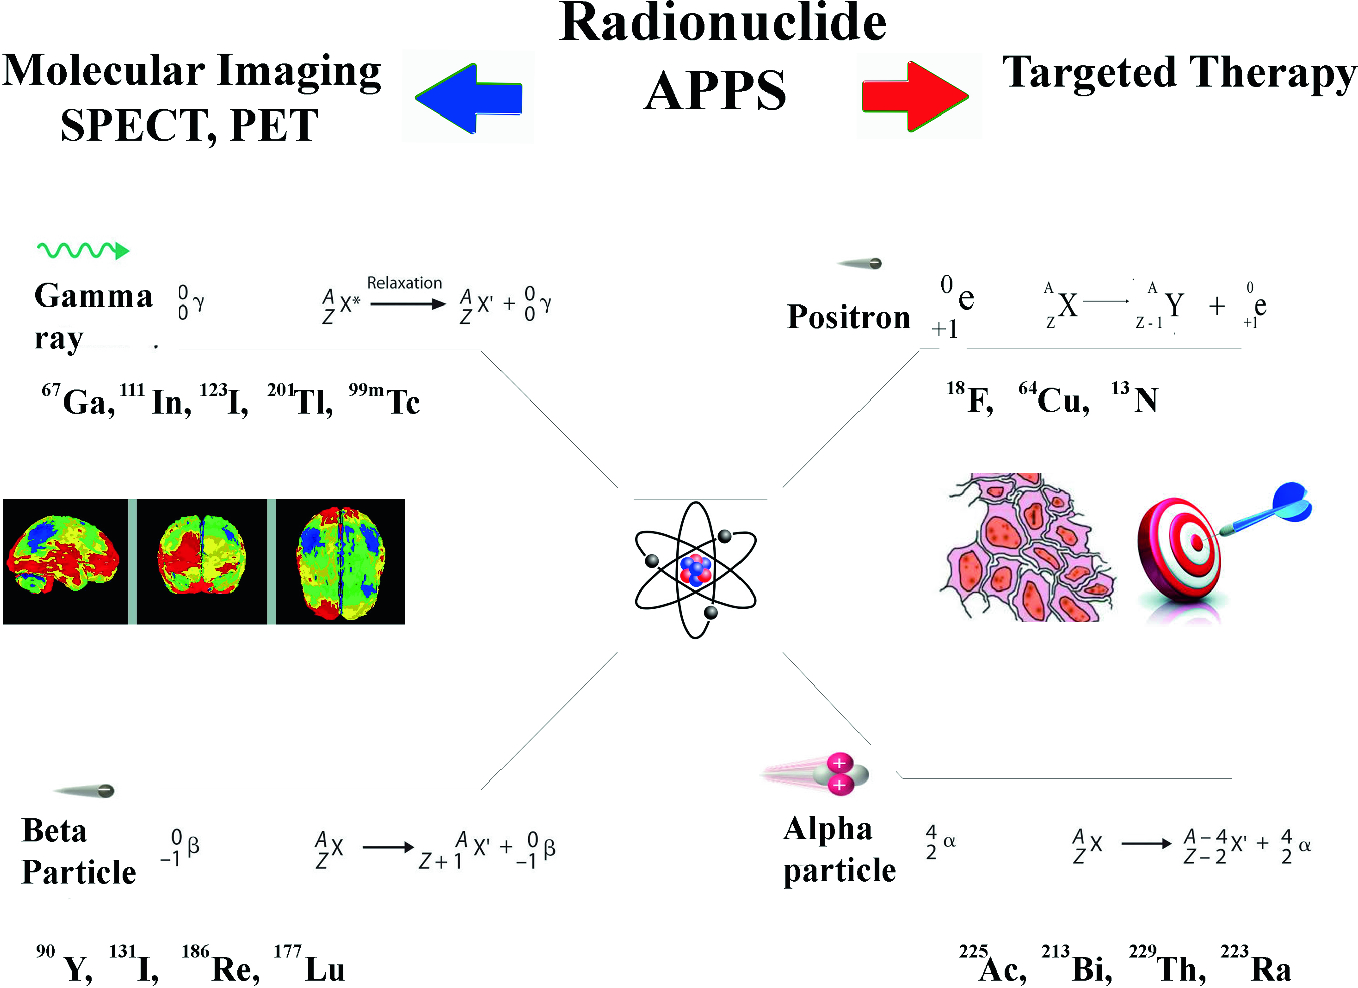 Dual-Targeted Therapy and Molecular Imaging with